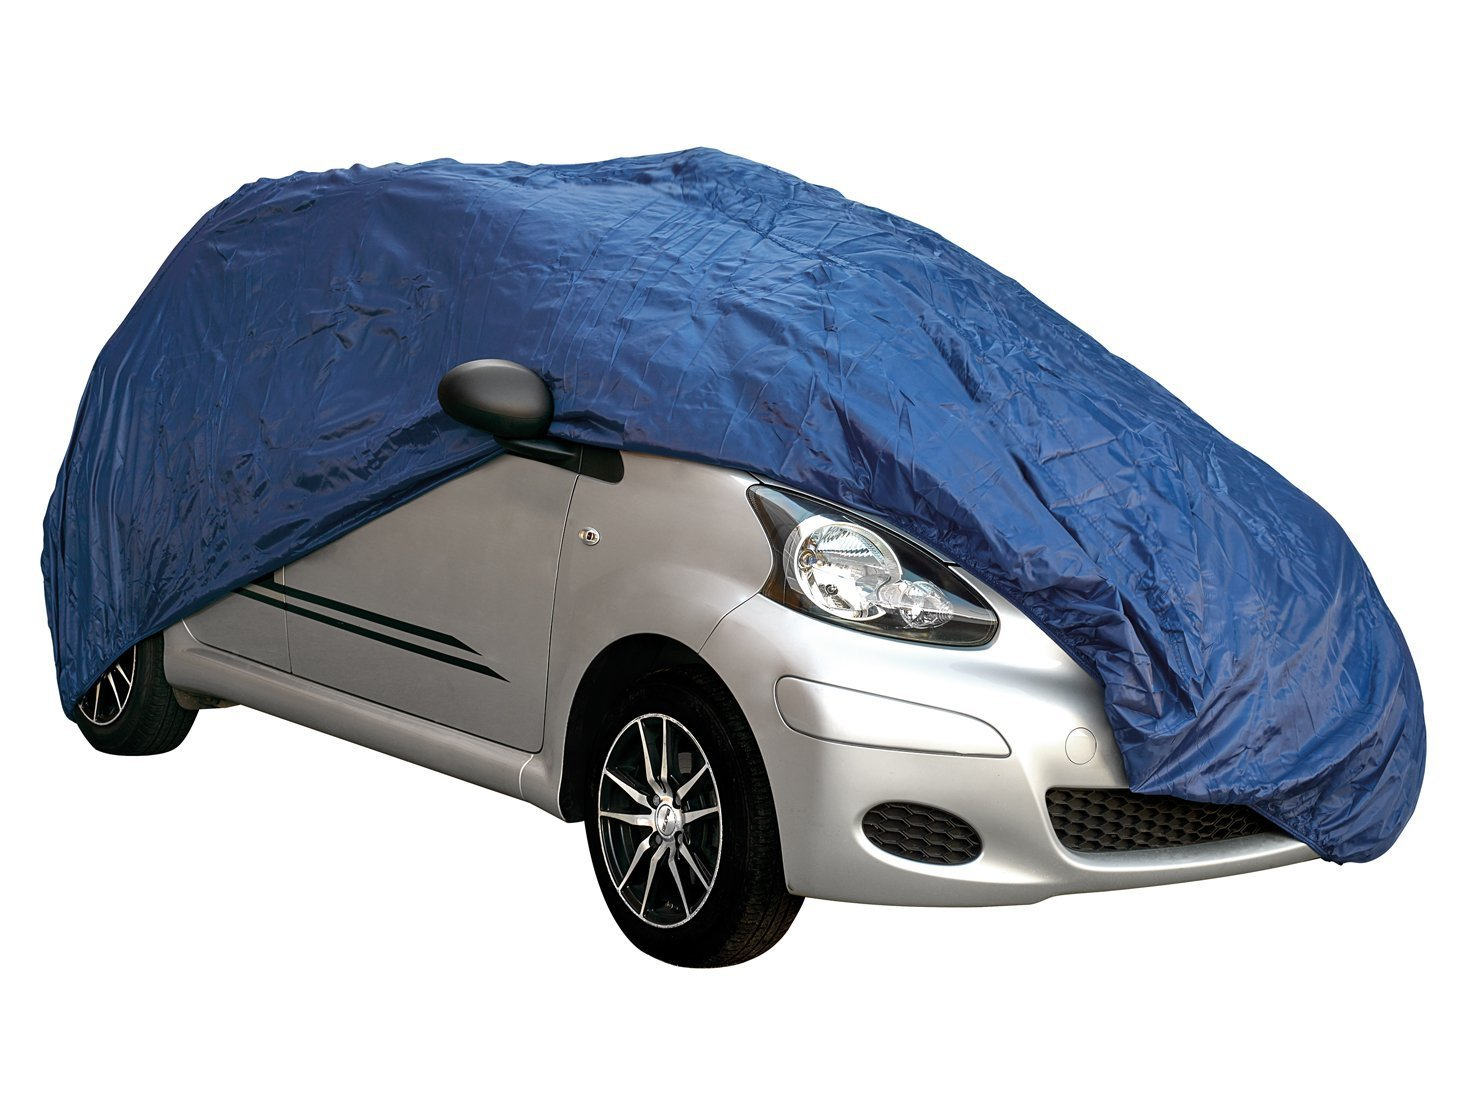 SUMEX Ford Fiesta 3door All Year Protection Indoor & Outdoor Full Breathable Car Cover